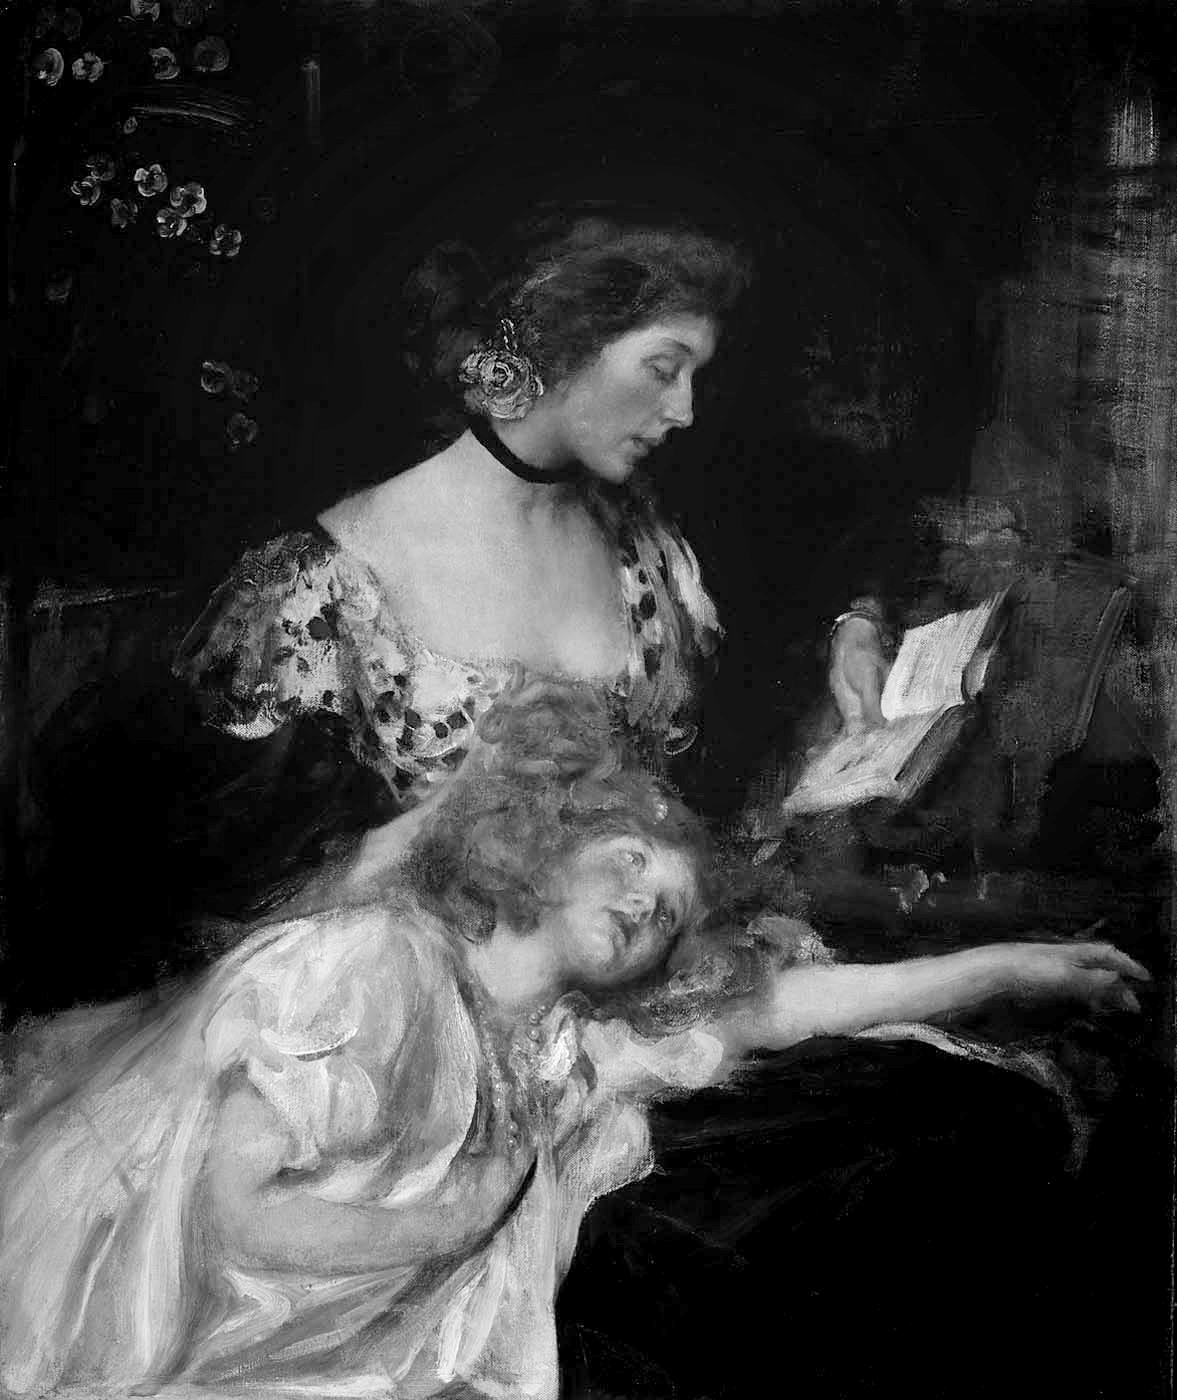 James_Jebusa_Shannon_1900_-_Mother_and_child_(Lady_Shannon_and_Kitty).jpg